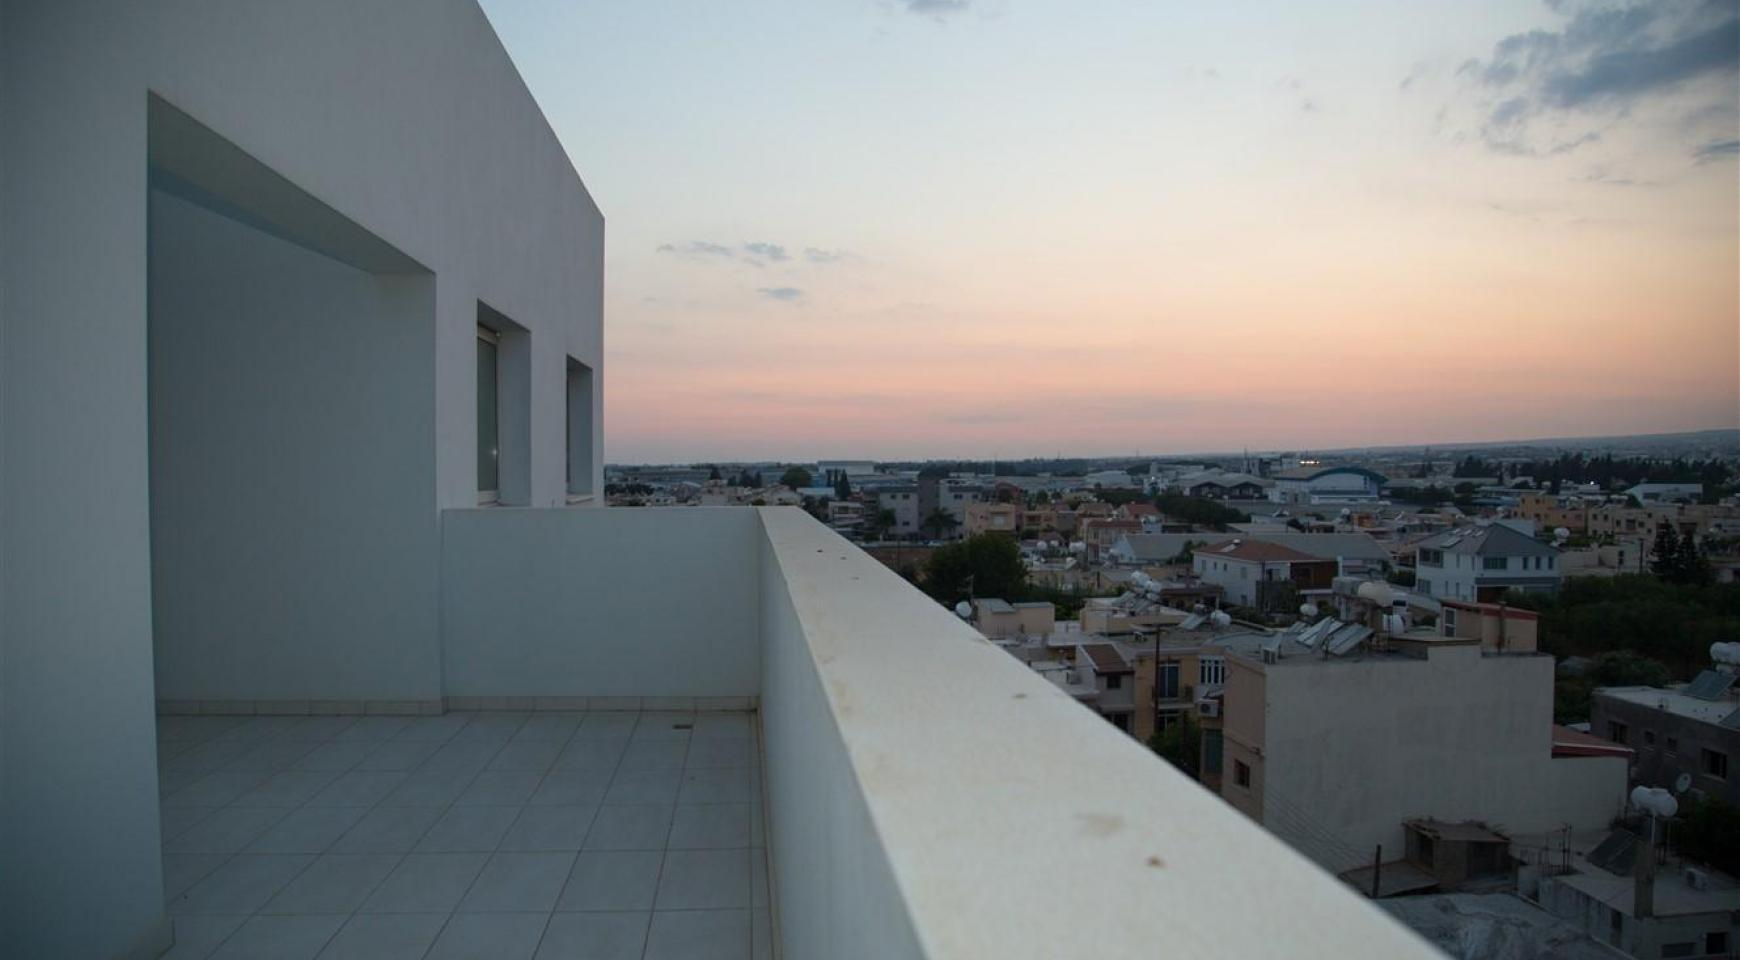 Elite 3 Bedroom Penthouse with private Swimming Pool on the Roof - 31